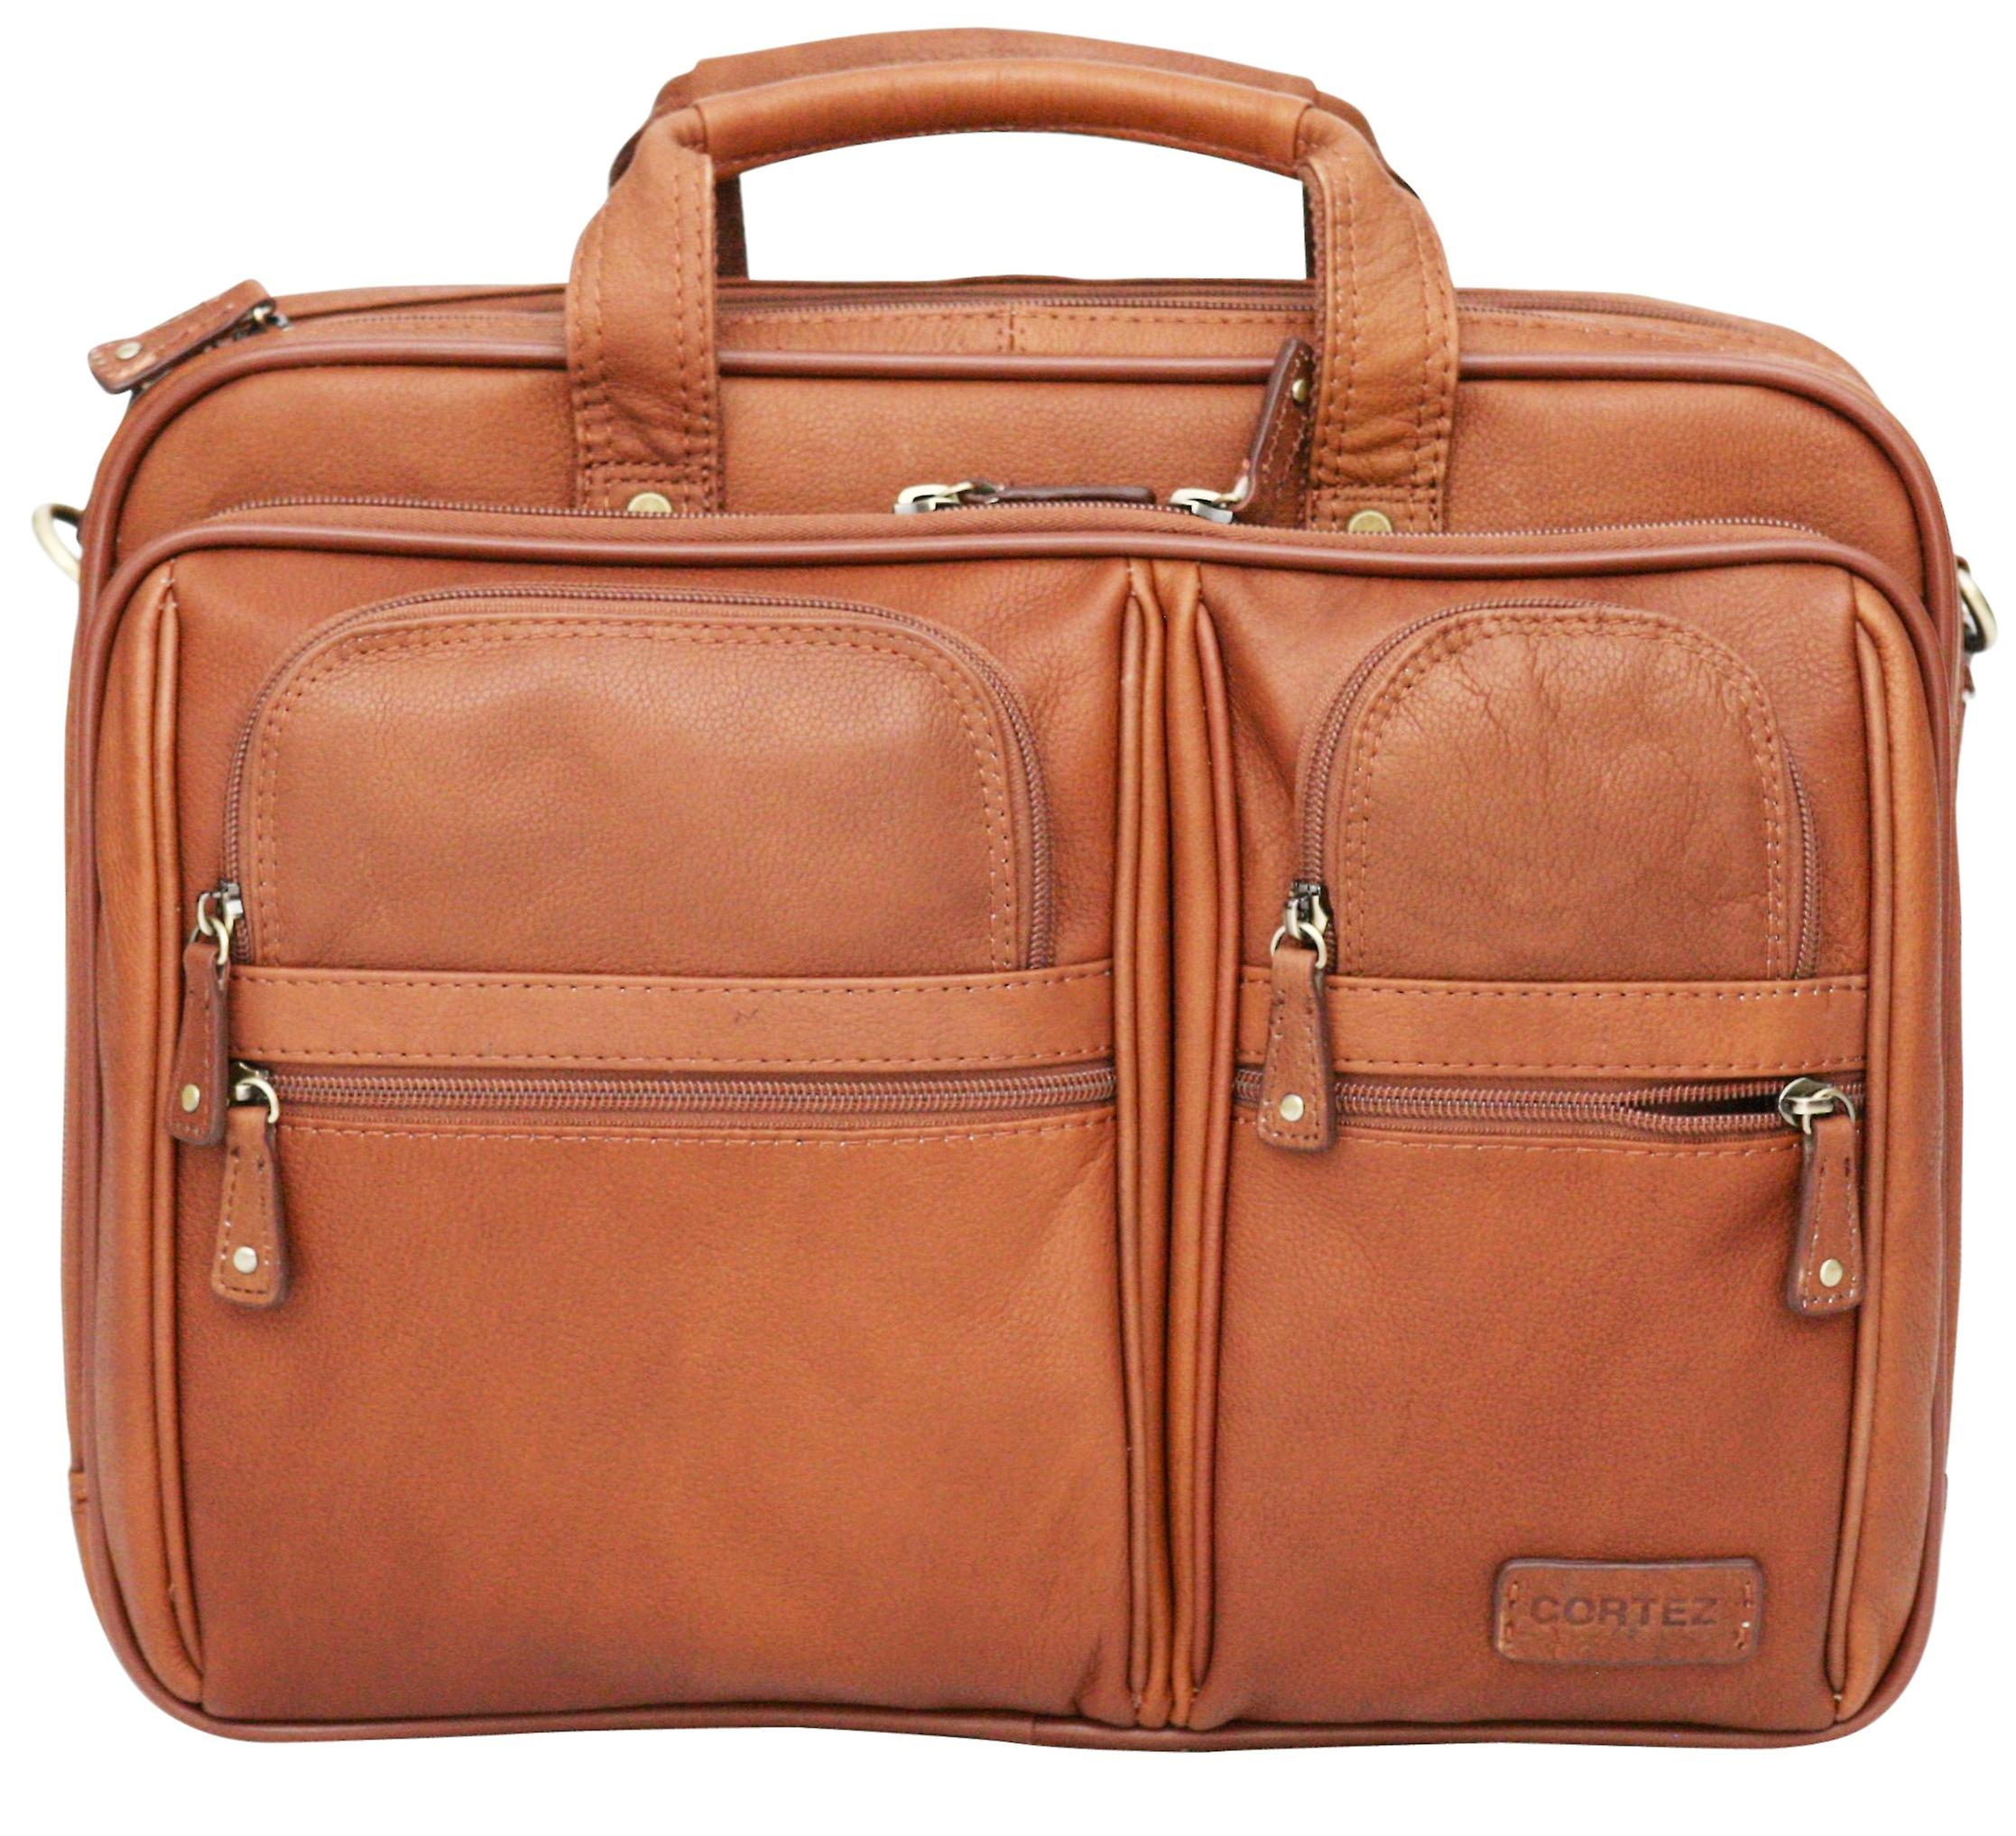 Cortez Colombian Leather 15.6 Inch Laptop Case Briefcase Soft Business Bag